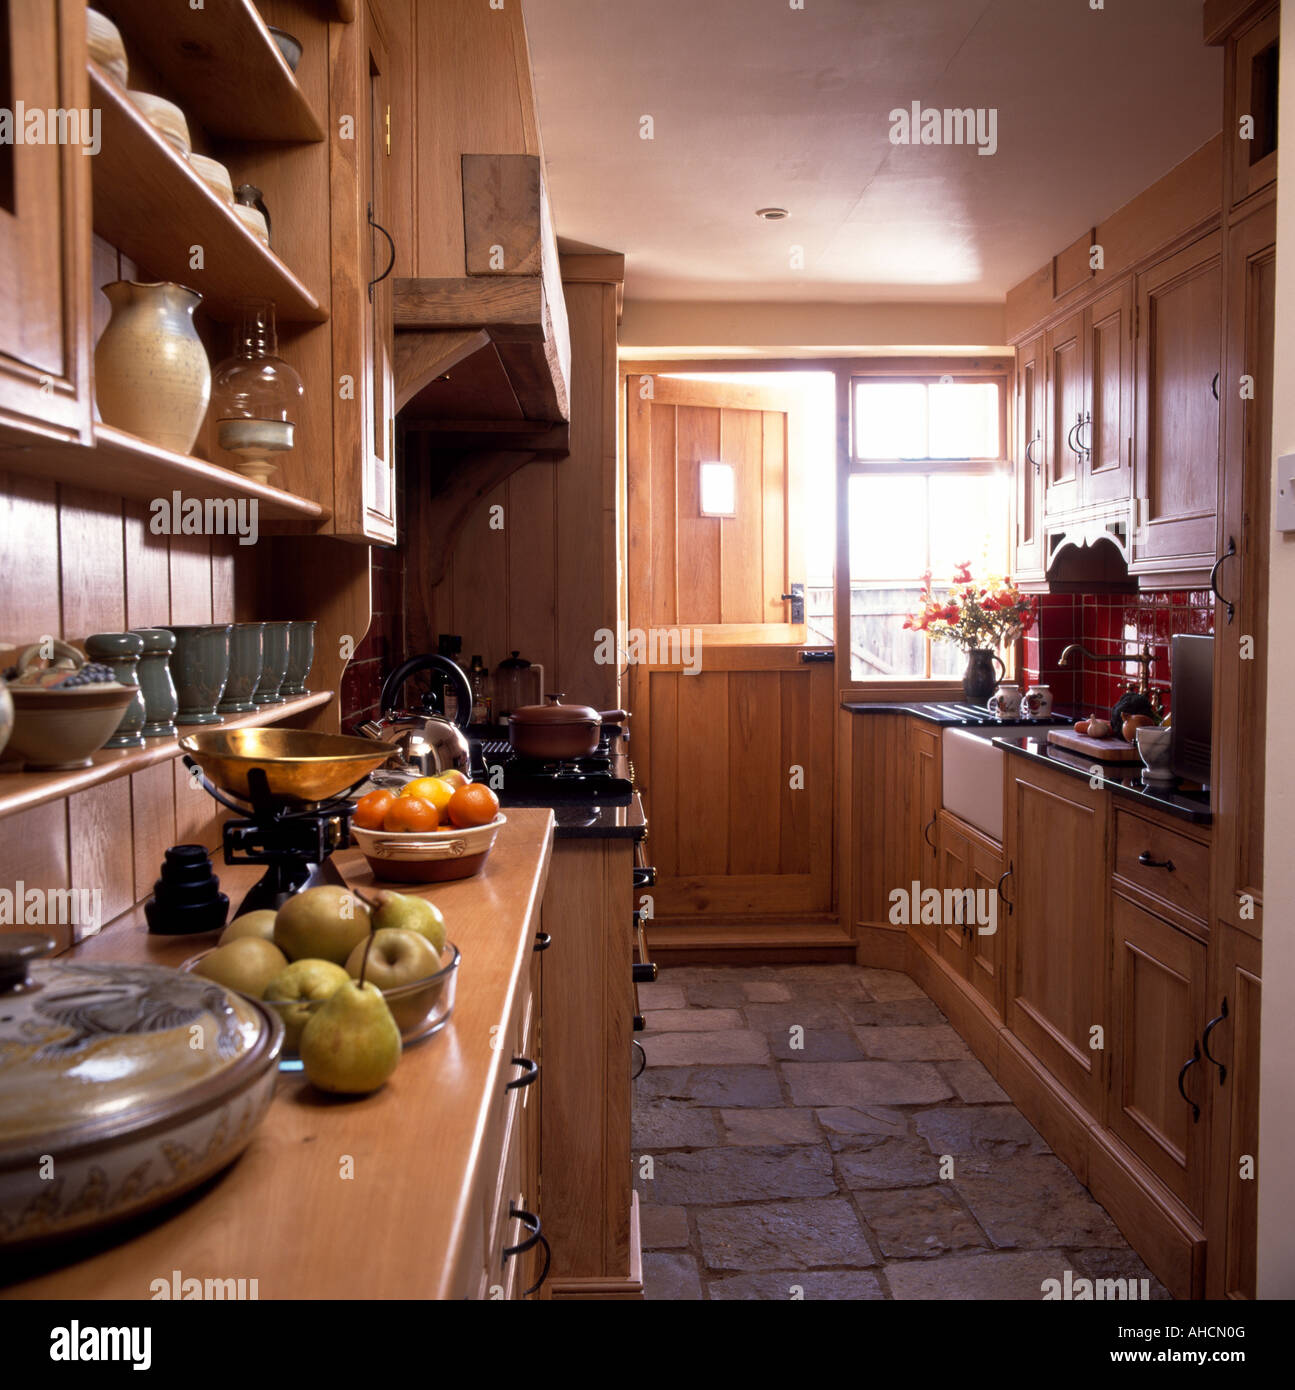 Kitchen Stone Floor Stone Floor Tiles In Narrow Country Kitchen With Fitted Wooden